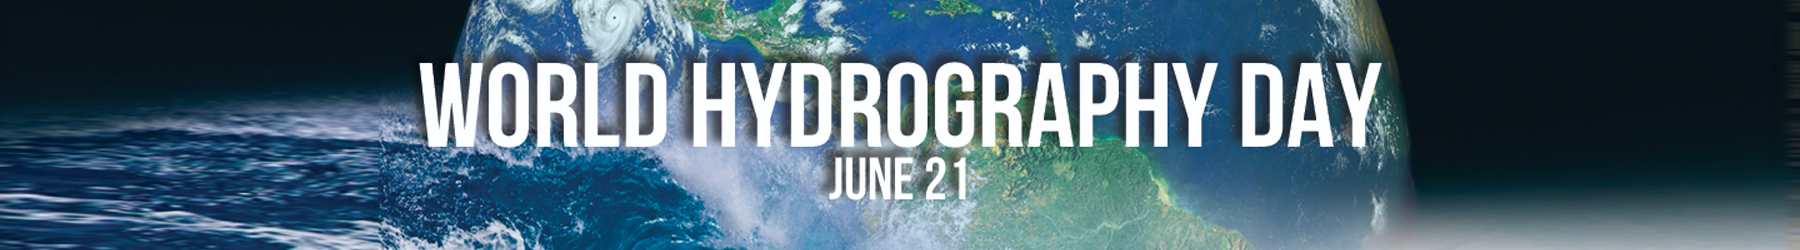 World Hydrographic Day